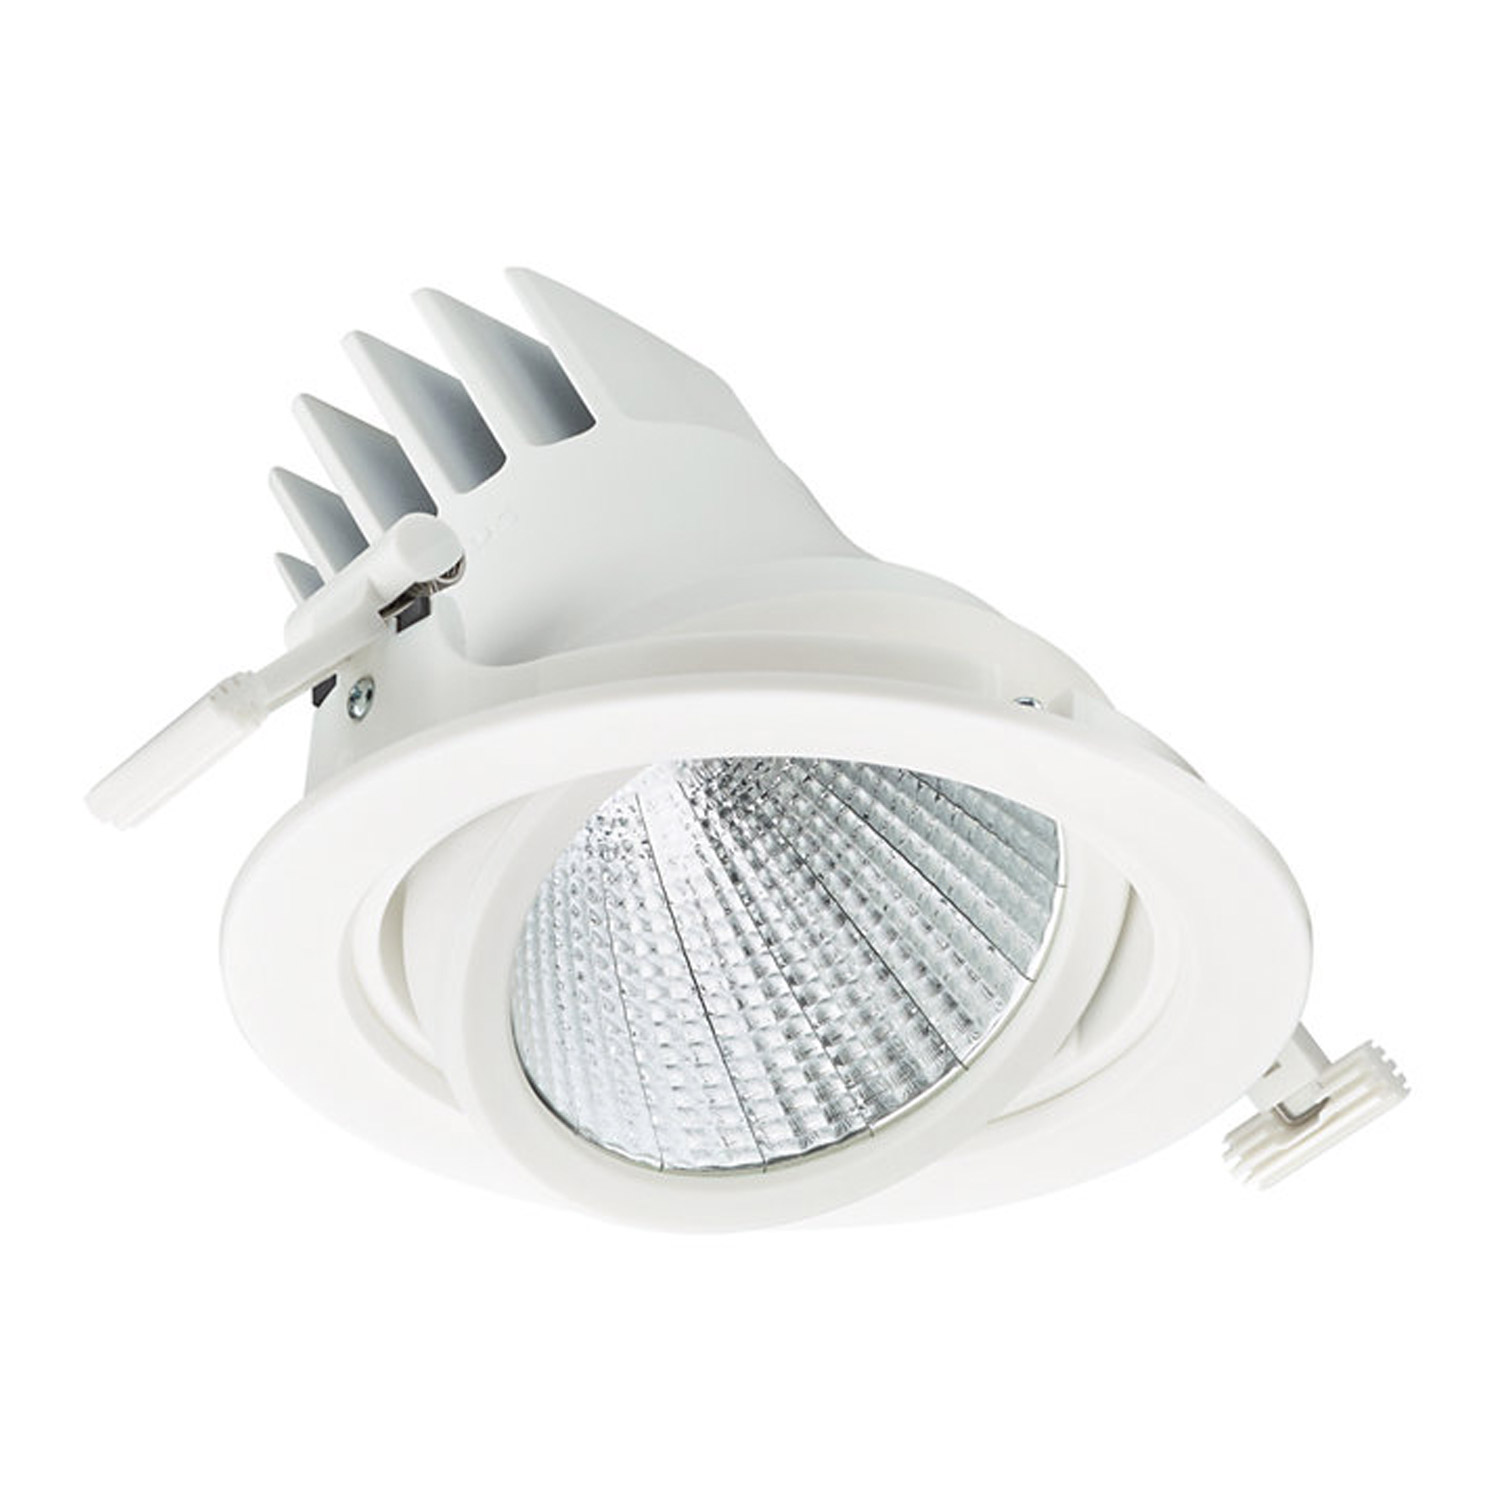 Philips LuxSpace Accent Performance LED Spot RS781B 38.5W 840 5150lm - Cool White